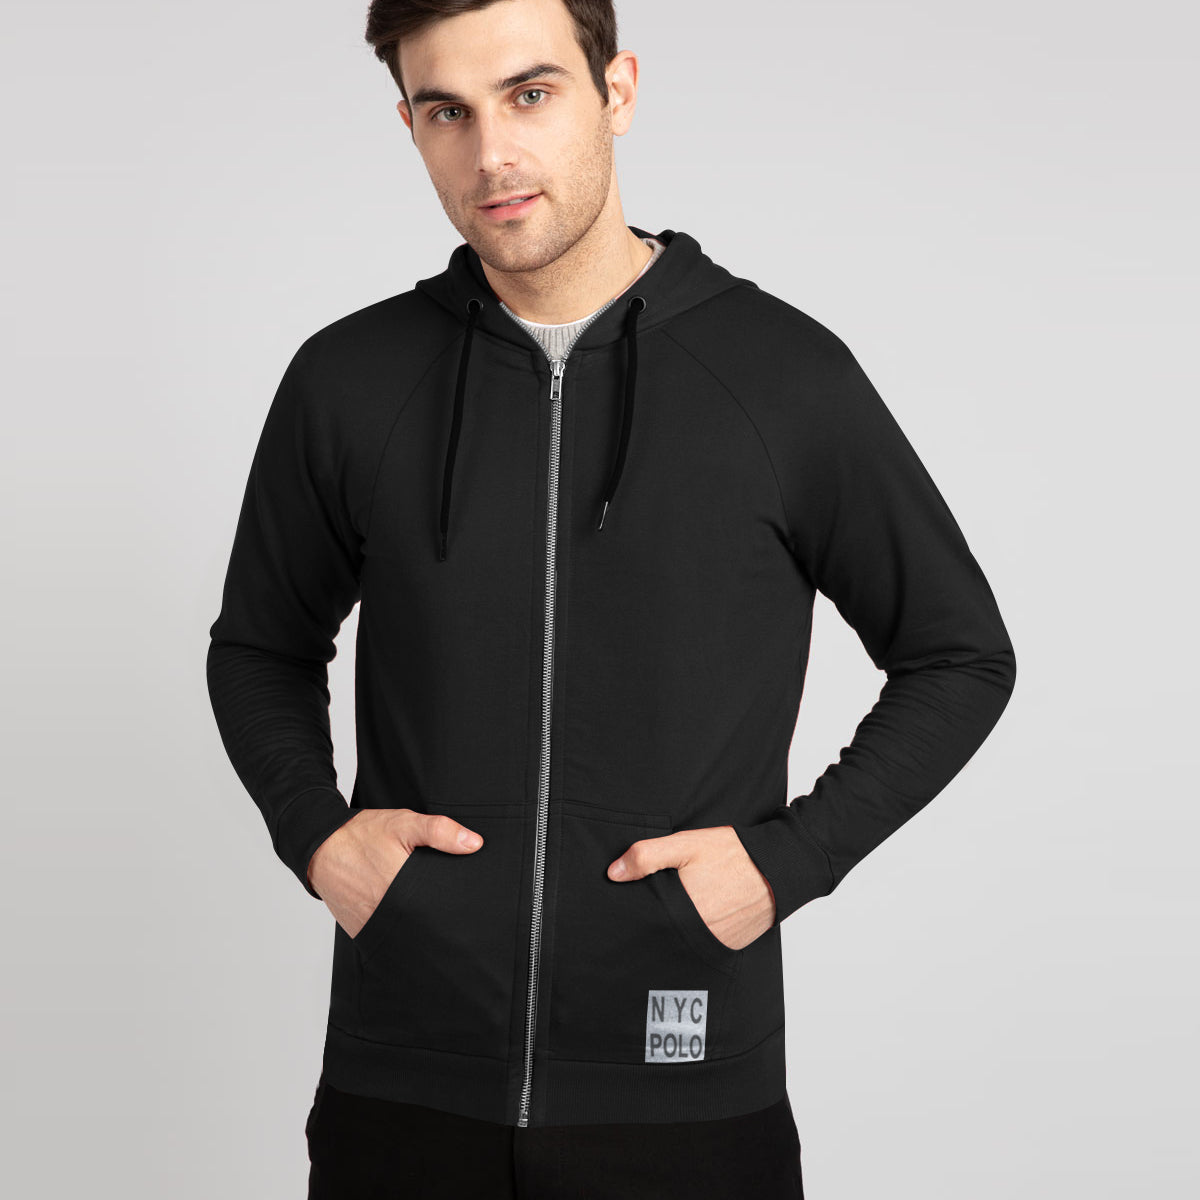 NYC Polo Fleece Zipper Hoodie For Men-Black-BE12914